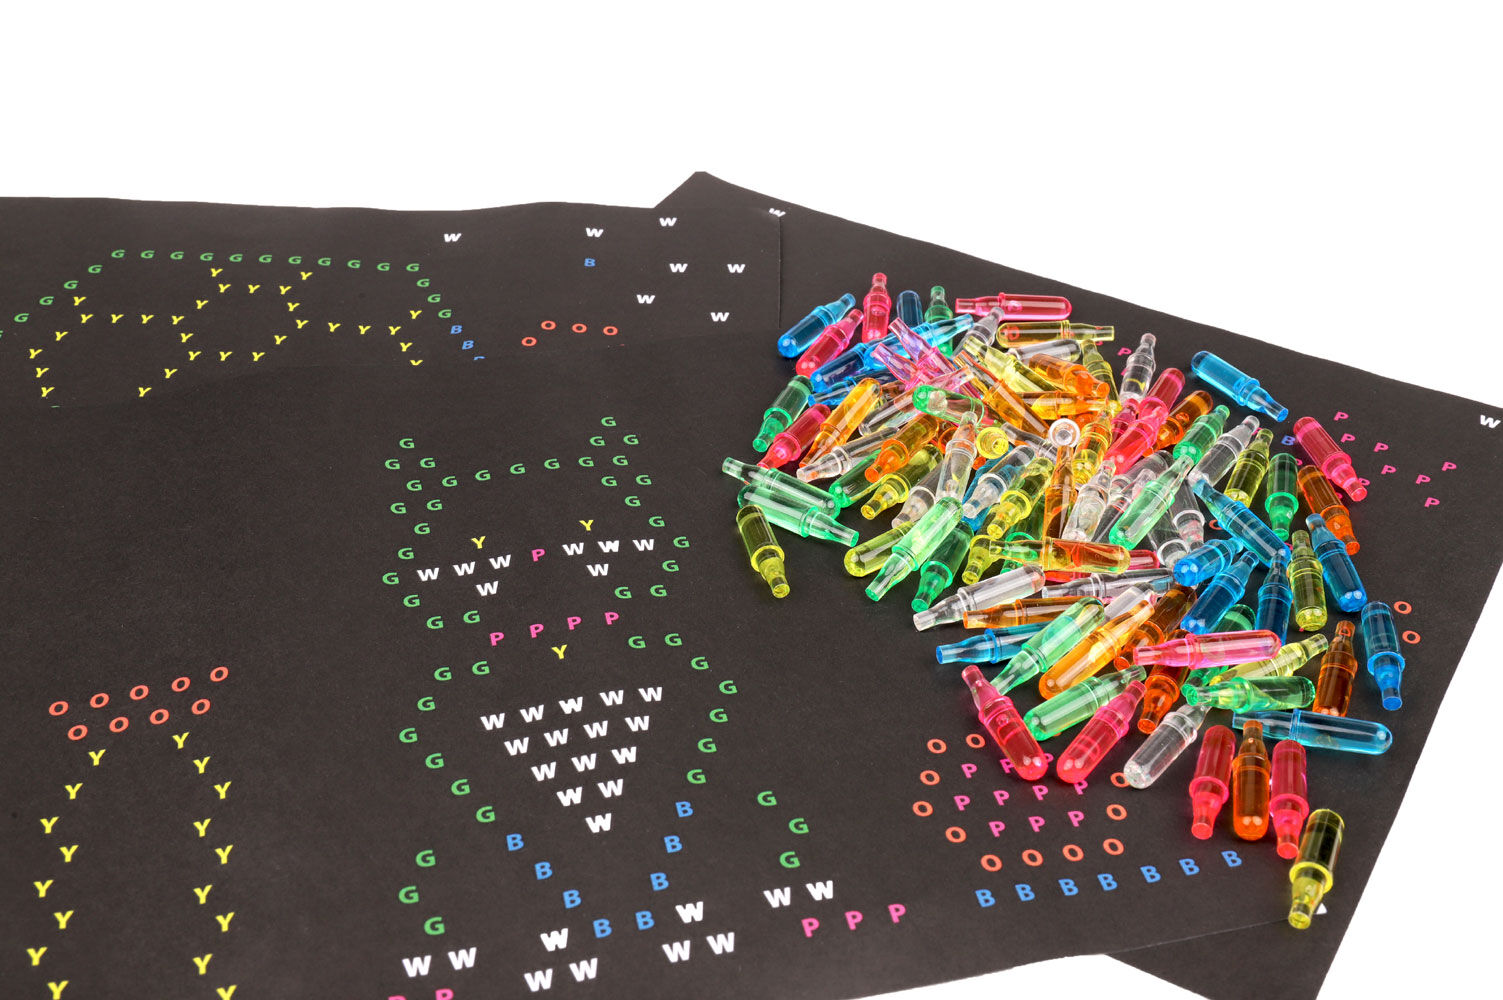 graphic about Lite Brite Refill Sheets Printable Free known as Lite-Brite Refill Pack